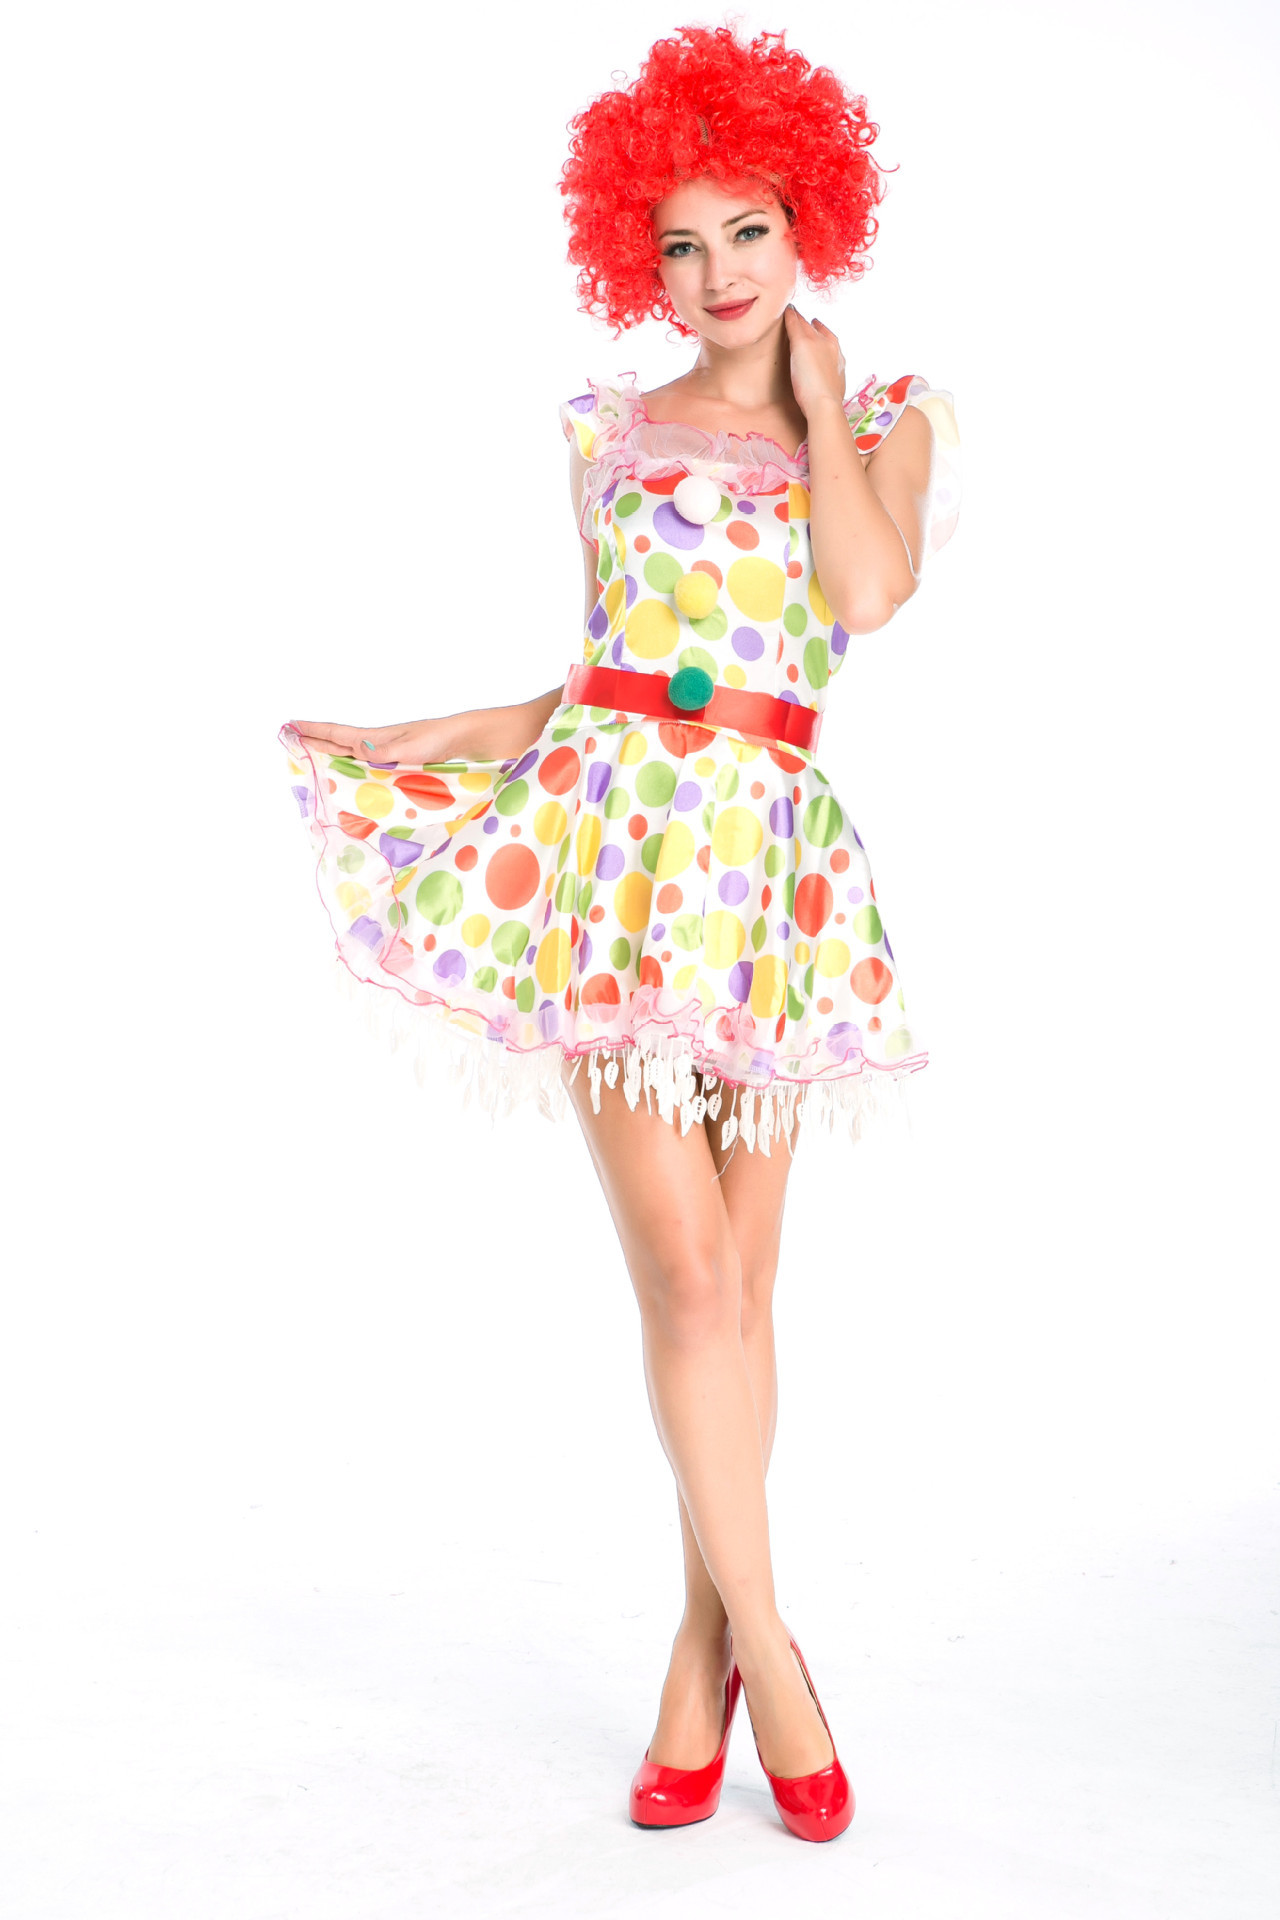 Cartoon costume circus clown role play costume with wig Denis cosplay costume for Halloween